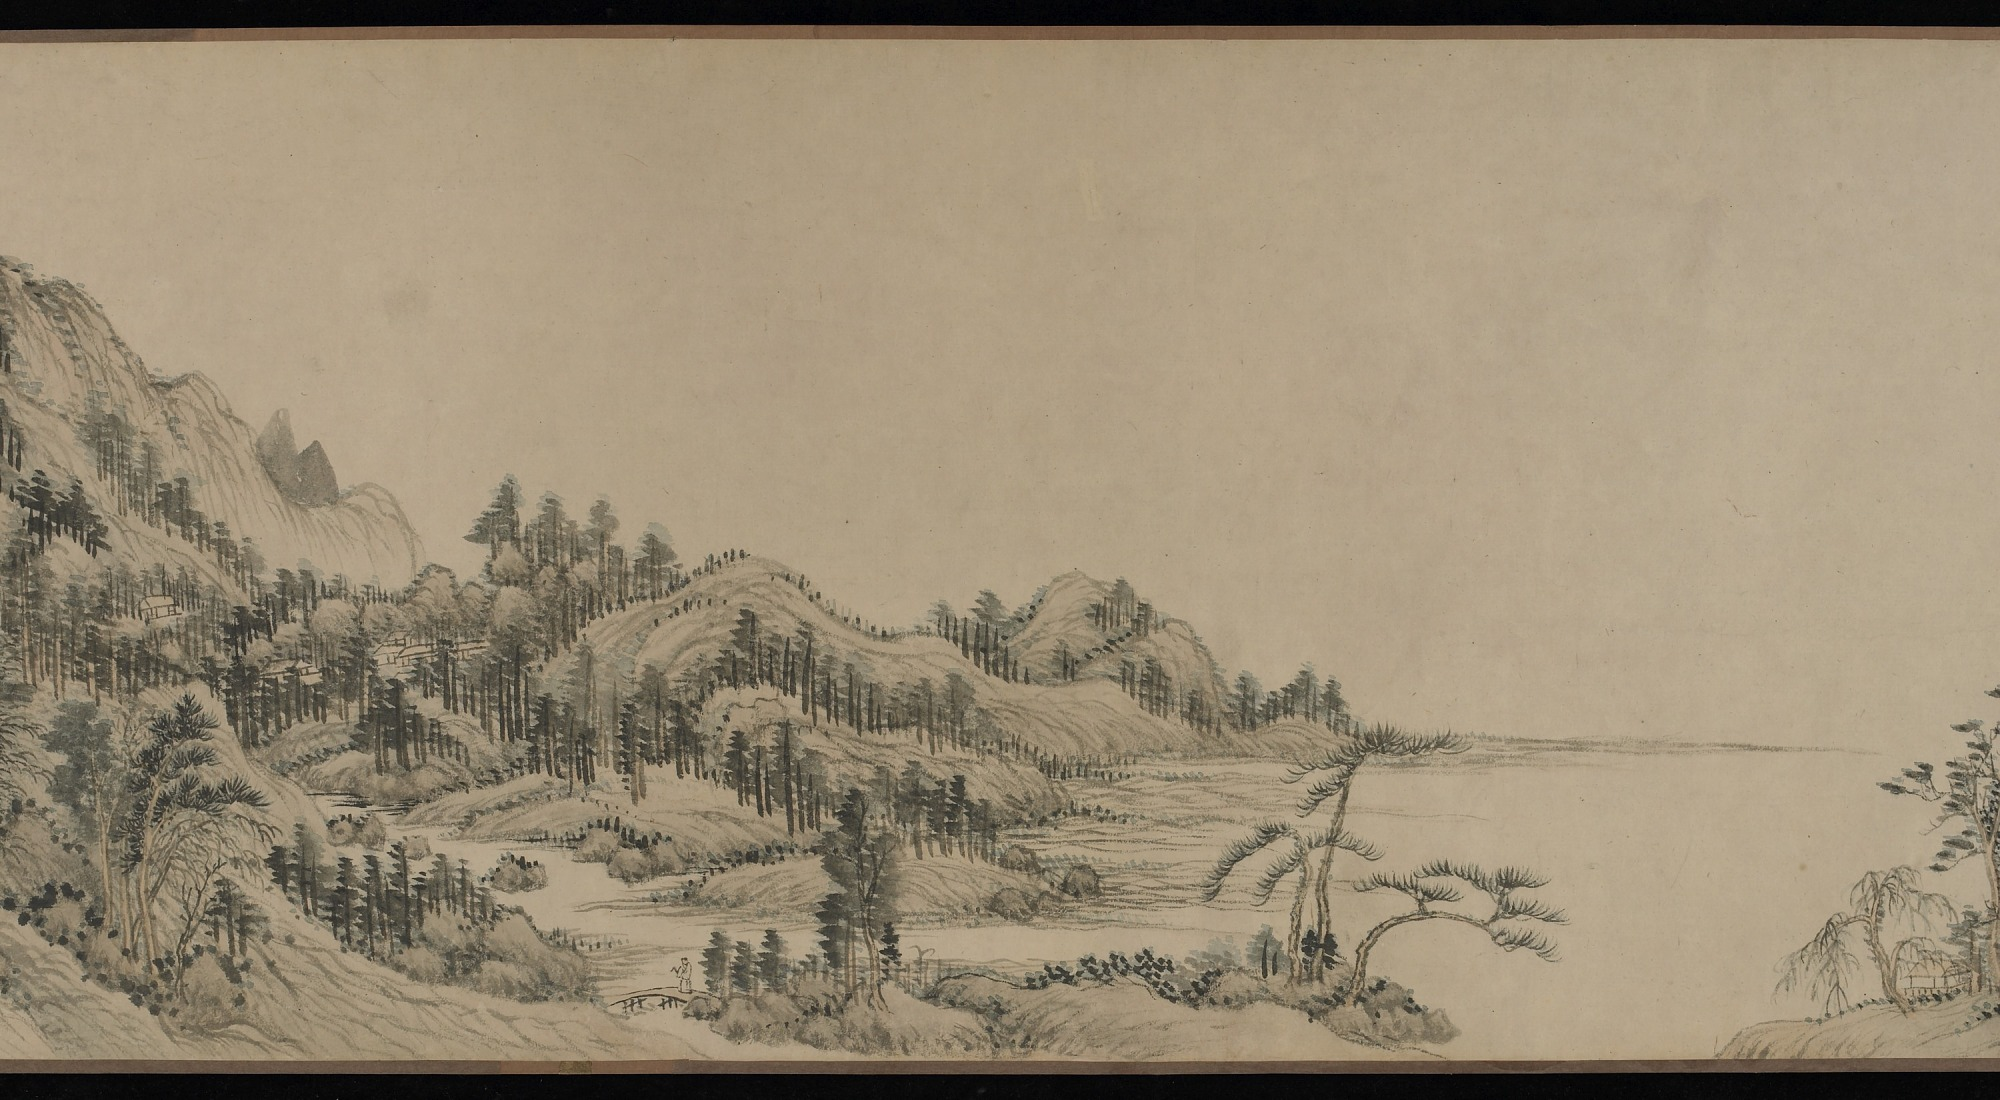 section 4: Dwelling in the Fuchun Mountains after Huang Gongwang